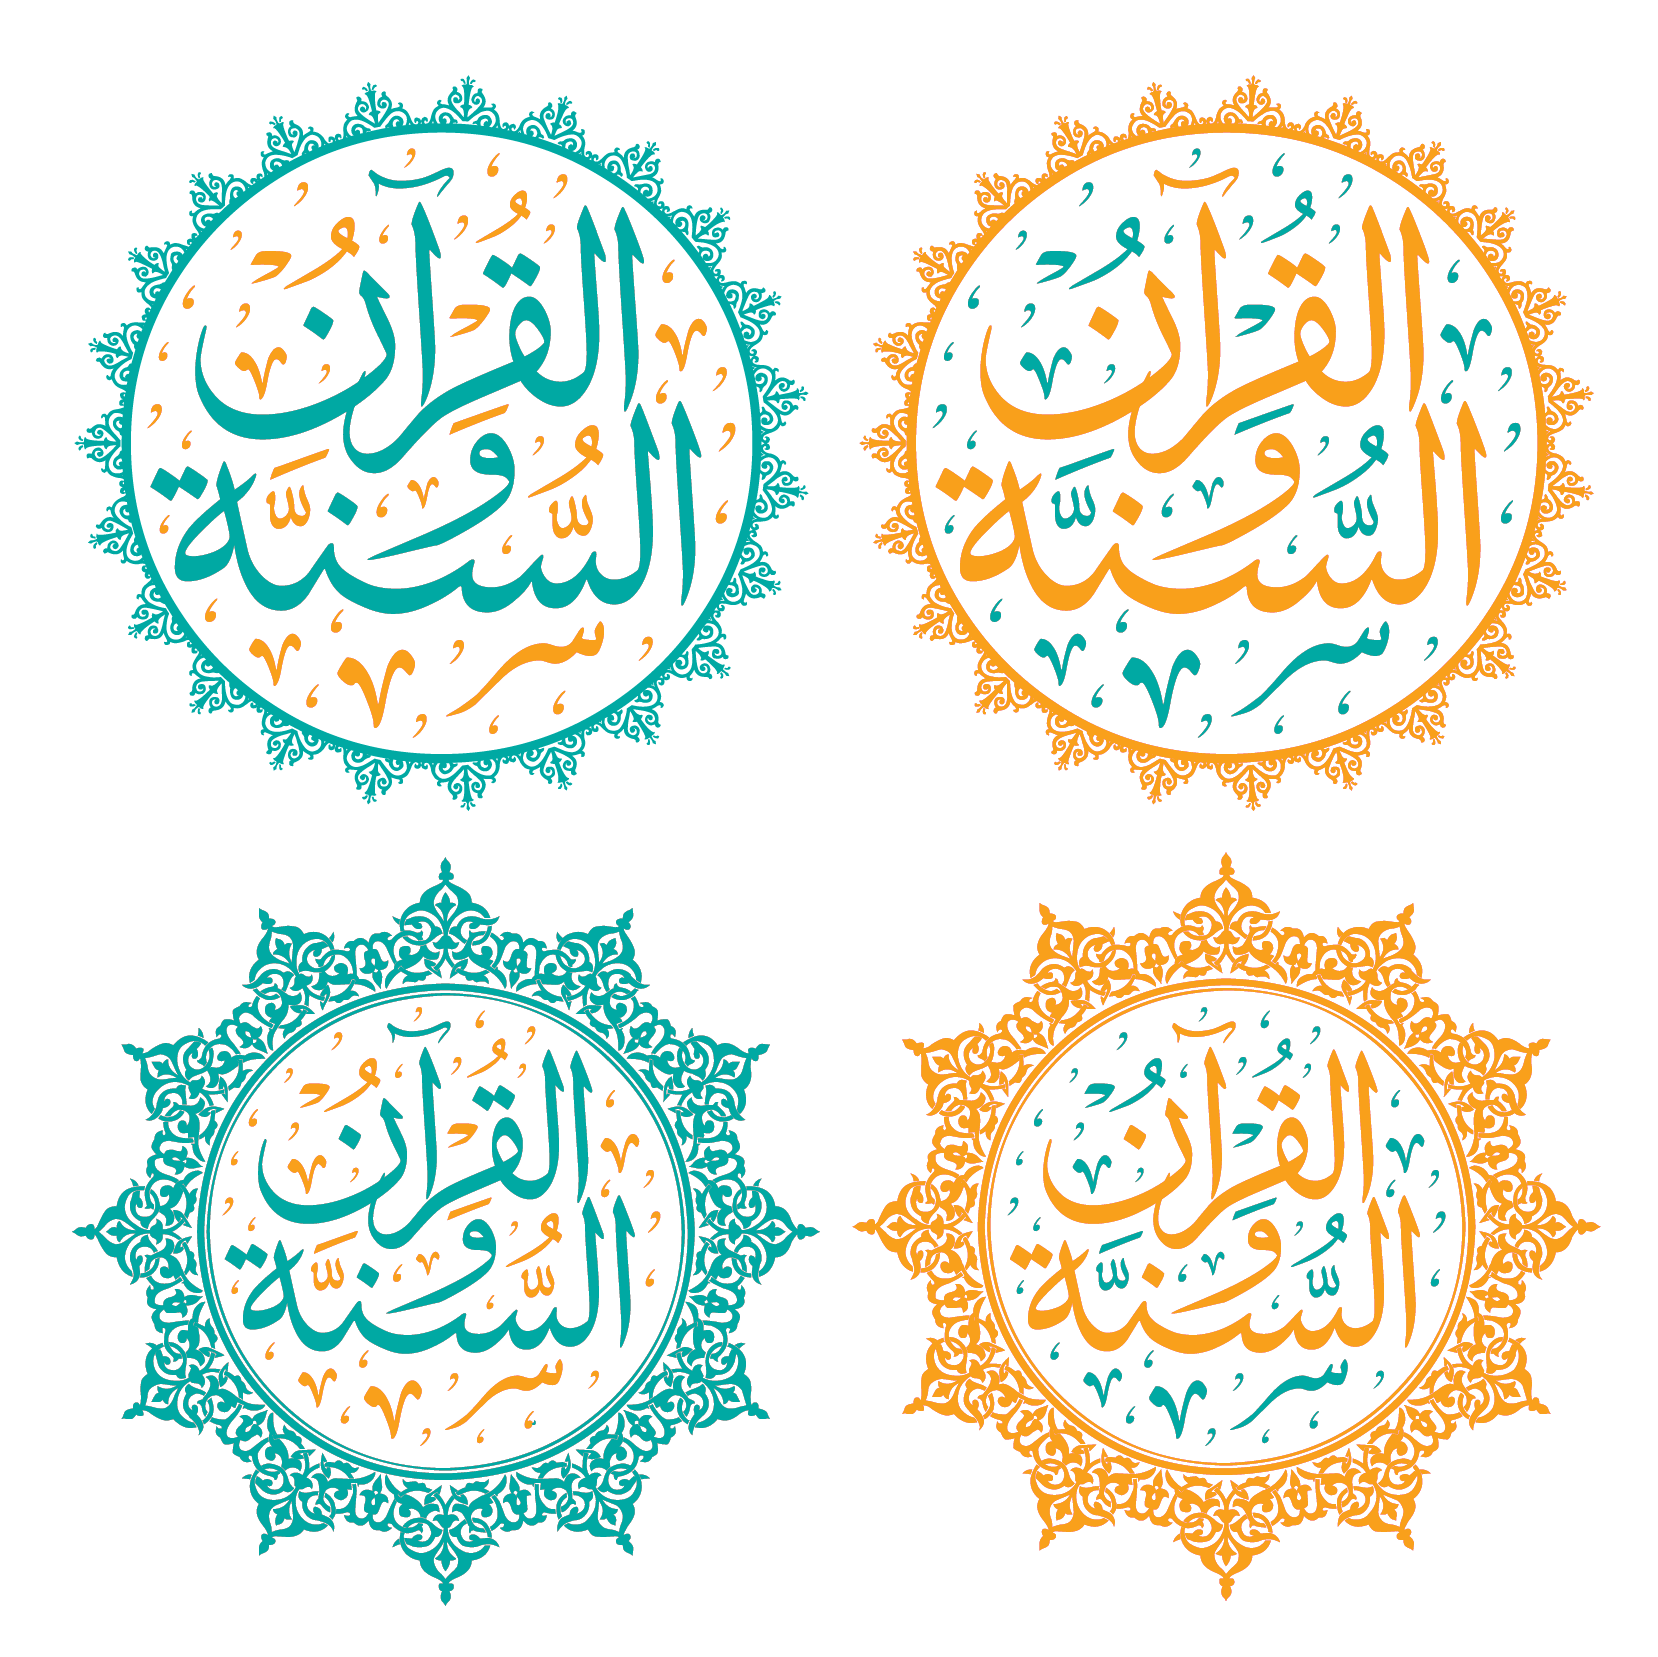 download quran and sunnah icons svg eps png psd ai vector color free #sunnah #logo #quran #svg #eps #png #psd #ai #vector #islamic #arabic #art #vectors #vectorart #icon #logos #icons #socialmedia #photoshop #illustrator #symbol #design #web #shapes #button #frames #buttons #islam #arab #smartphone #network